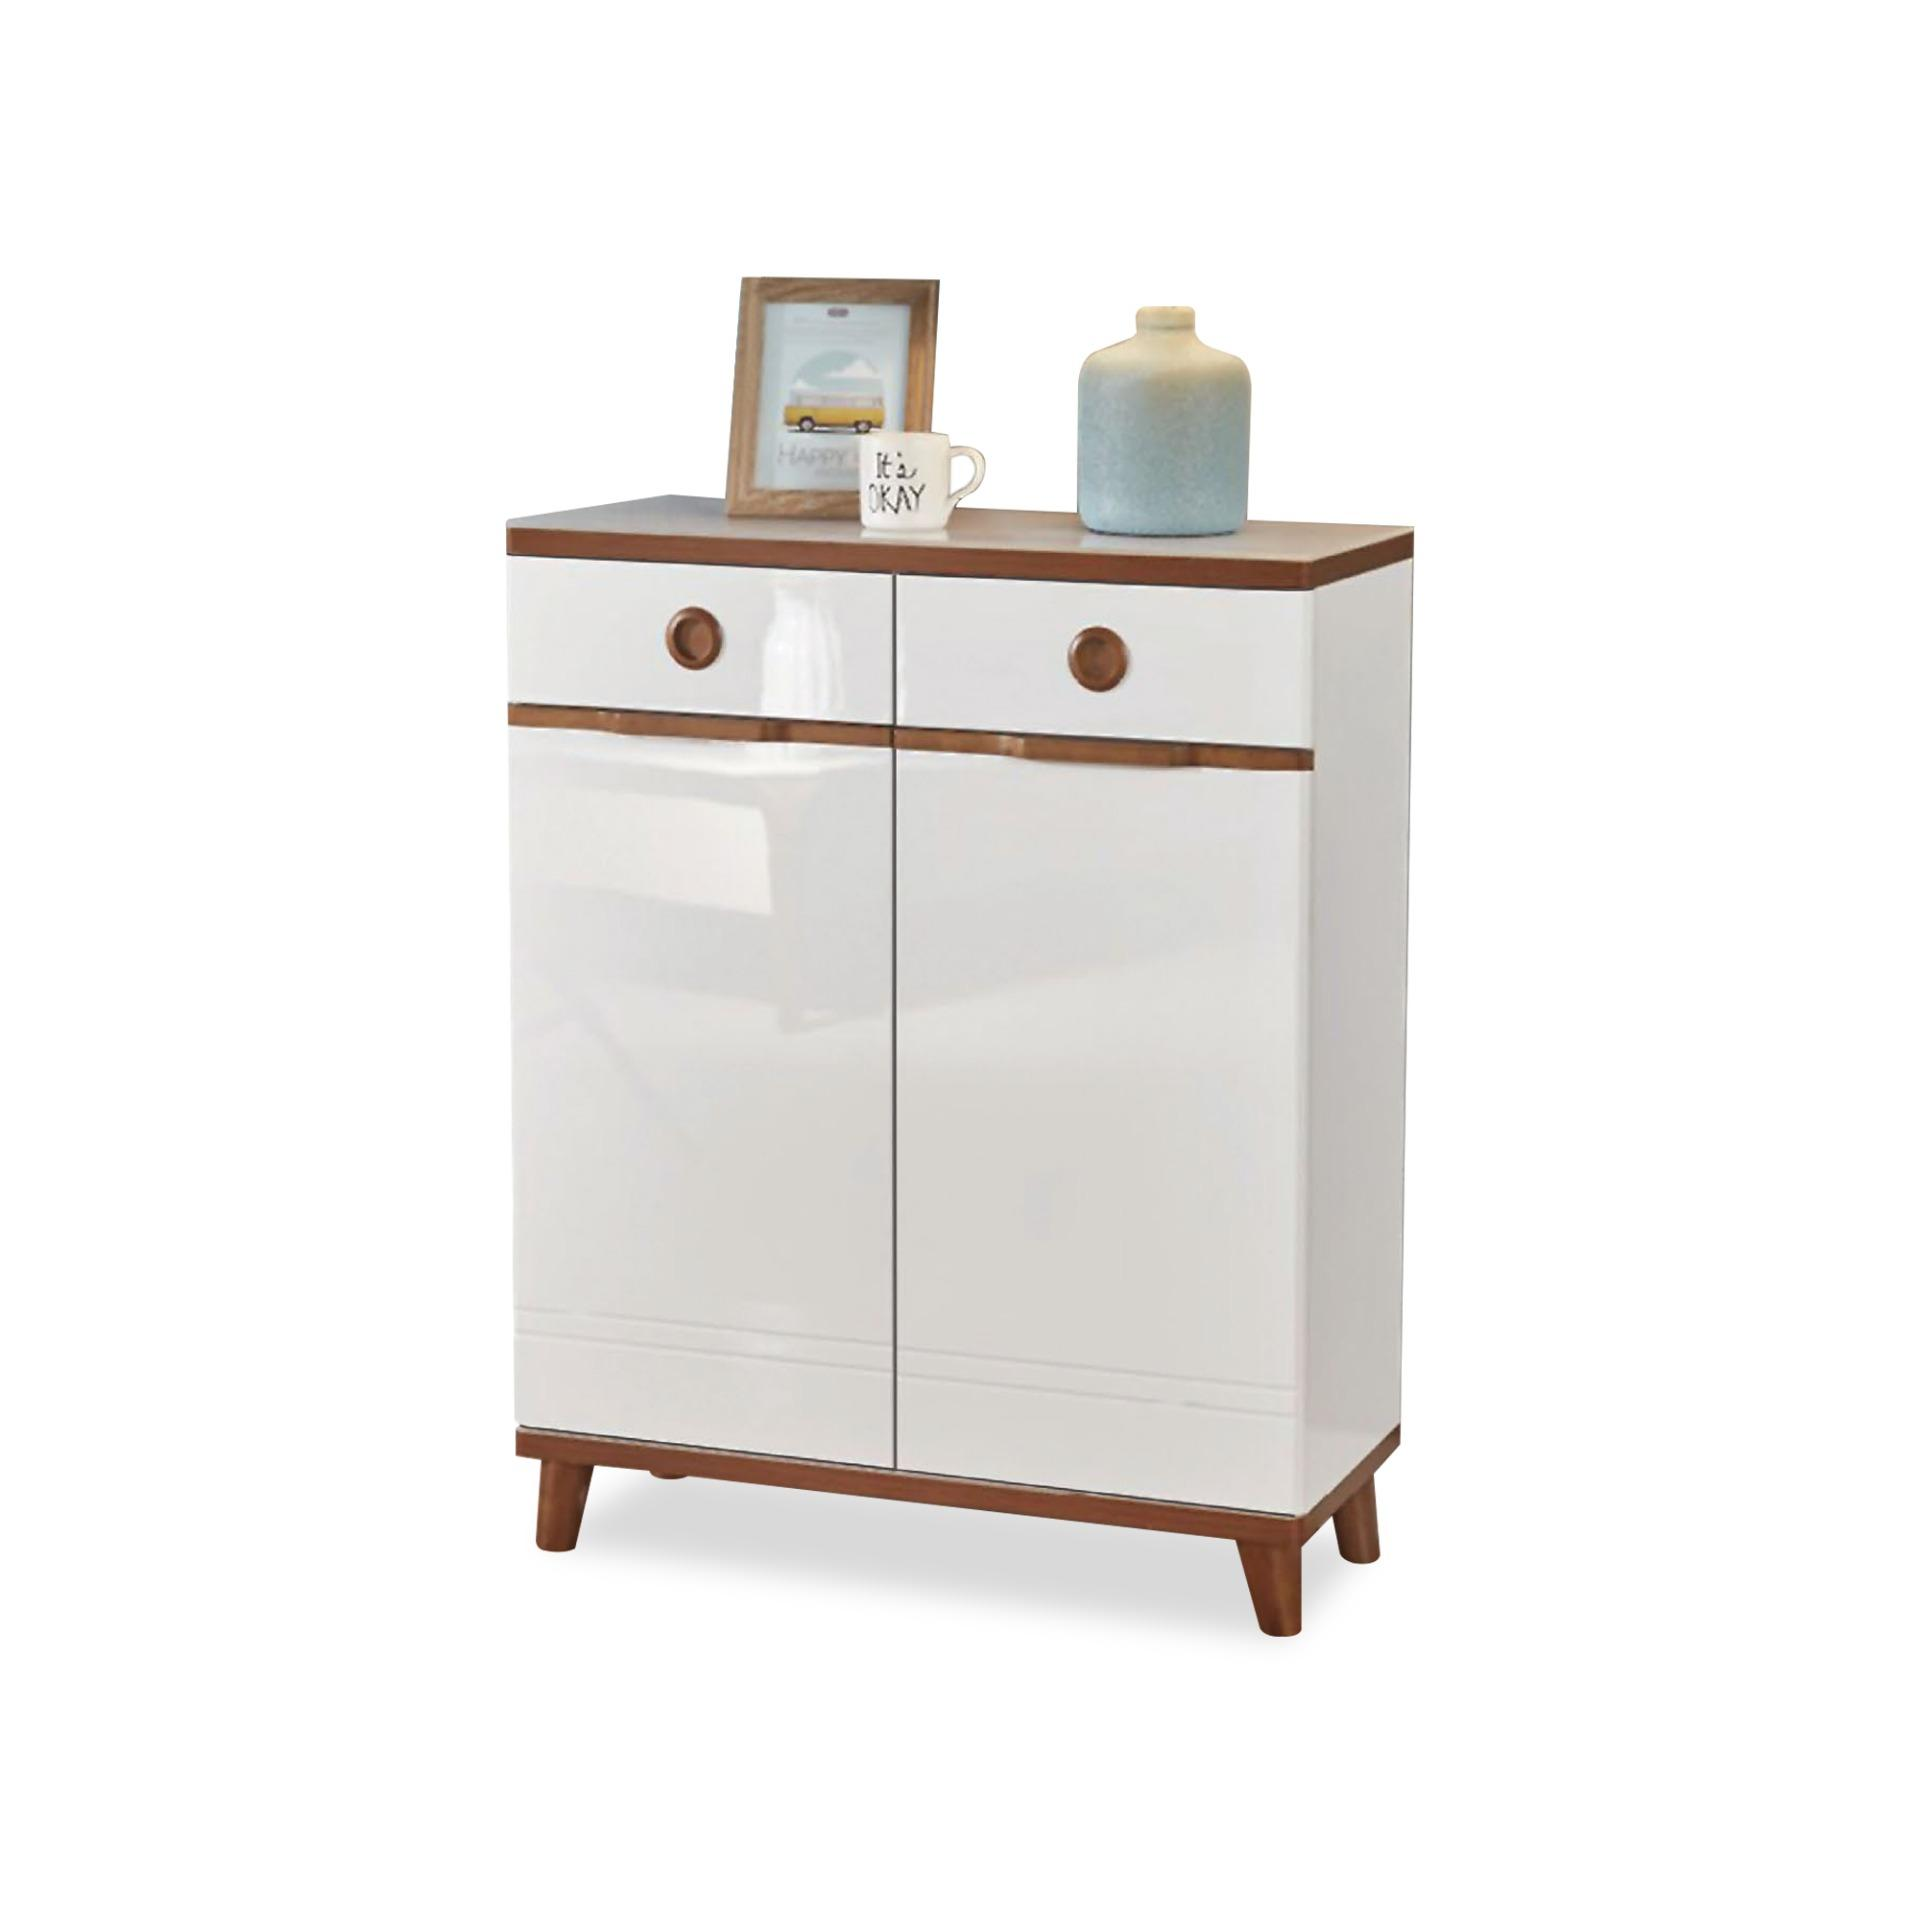 Solene 2 Door Shoe Cabinet (FREE DELIVERY)(FREE ASSEMBLY)